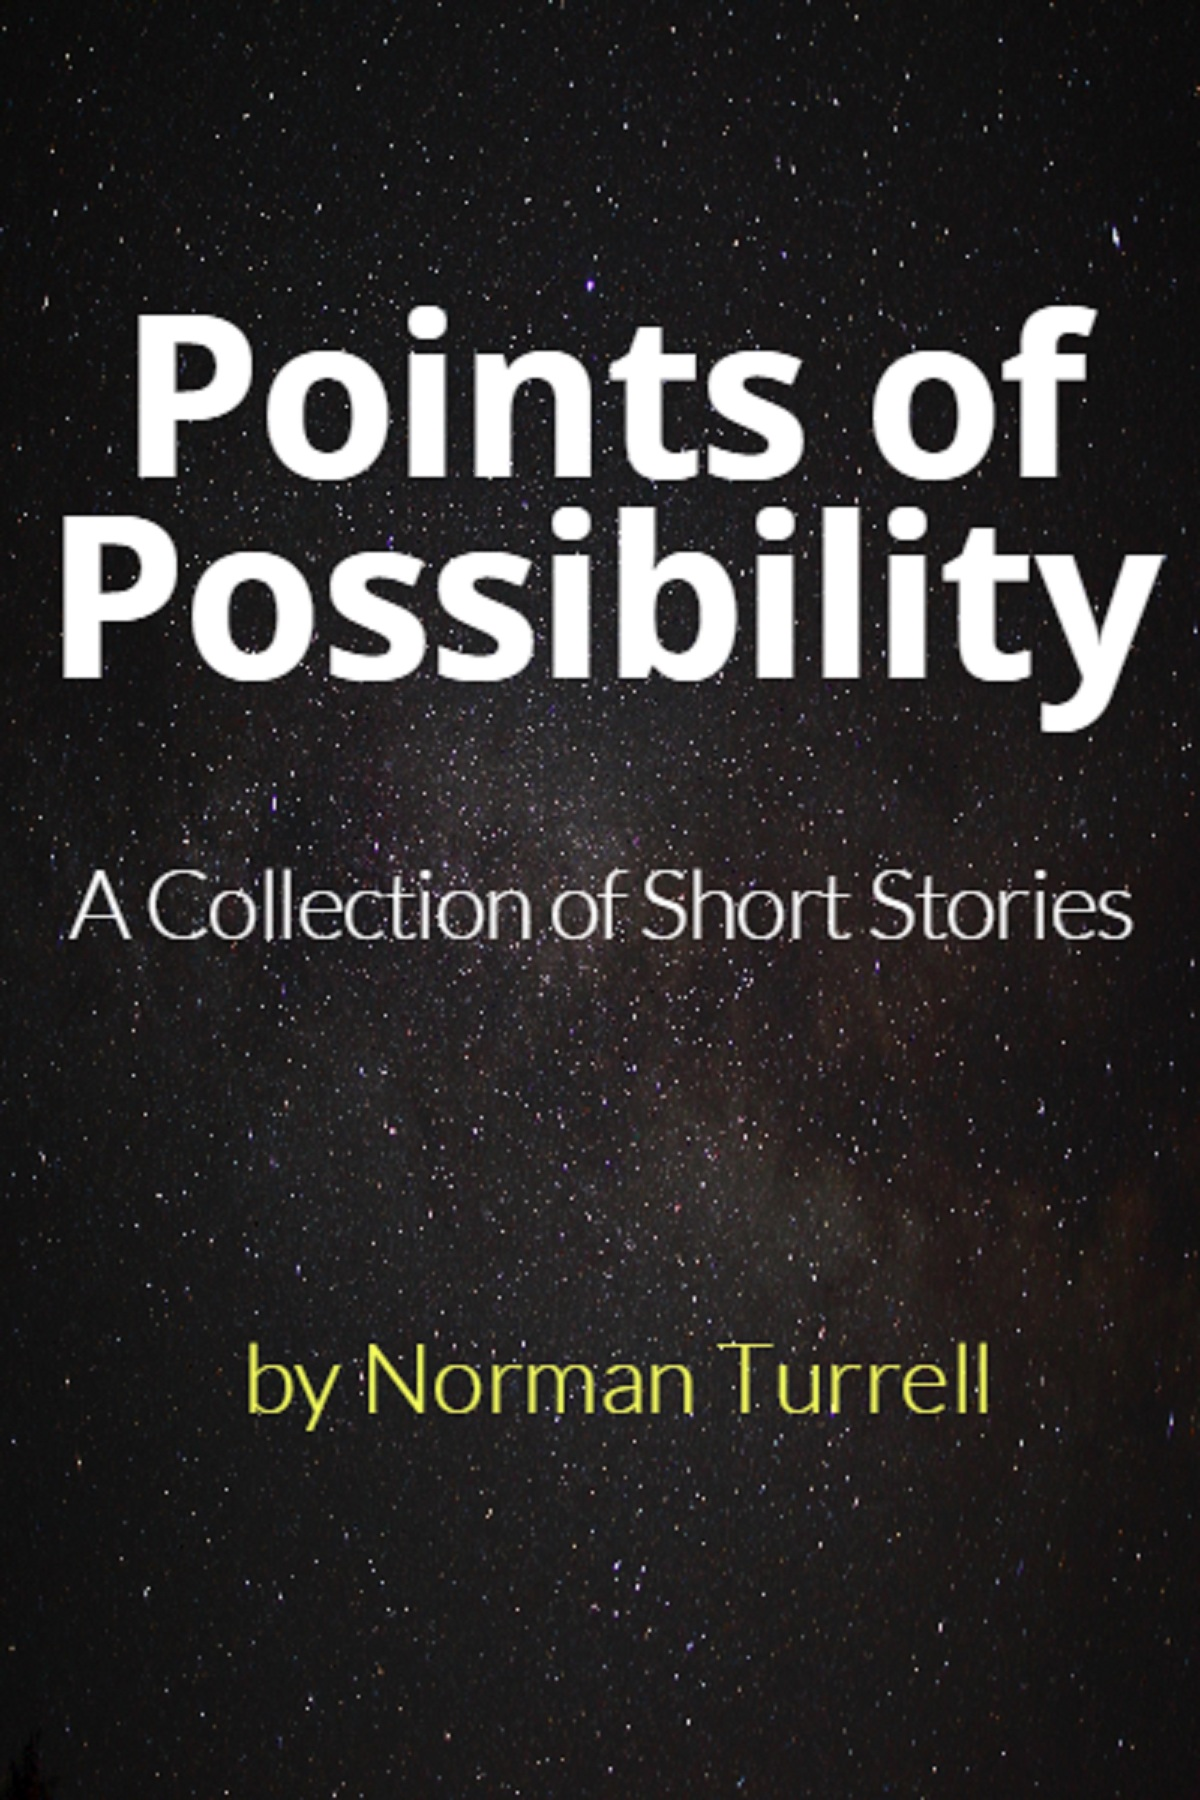 Points of Possibility, by Norman Turrell: A Review